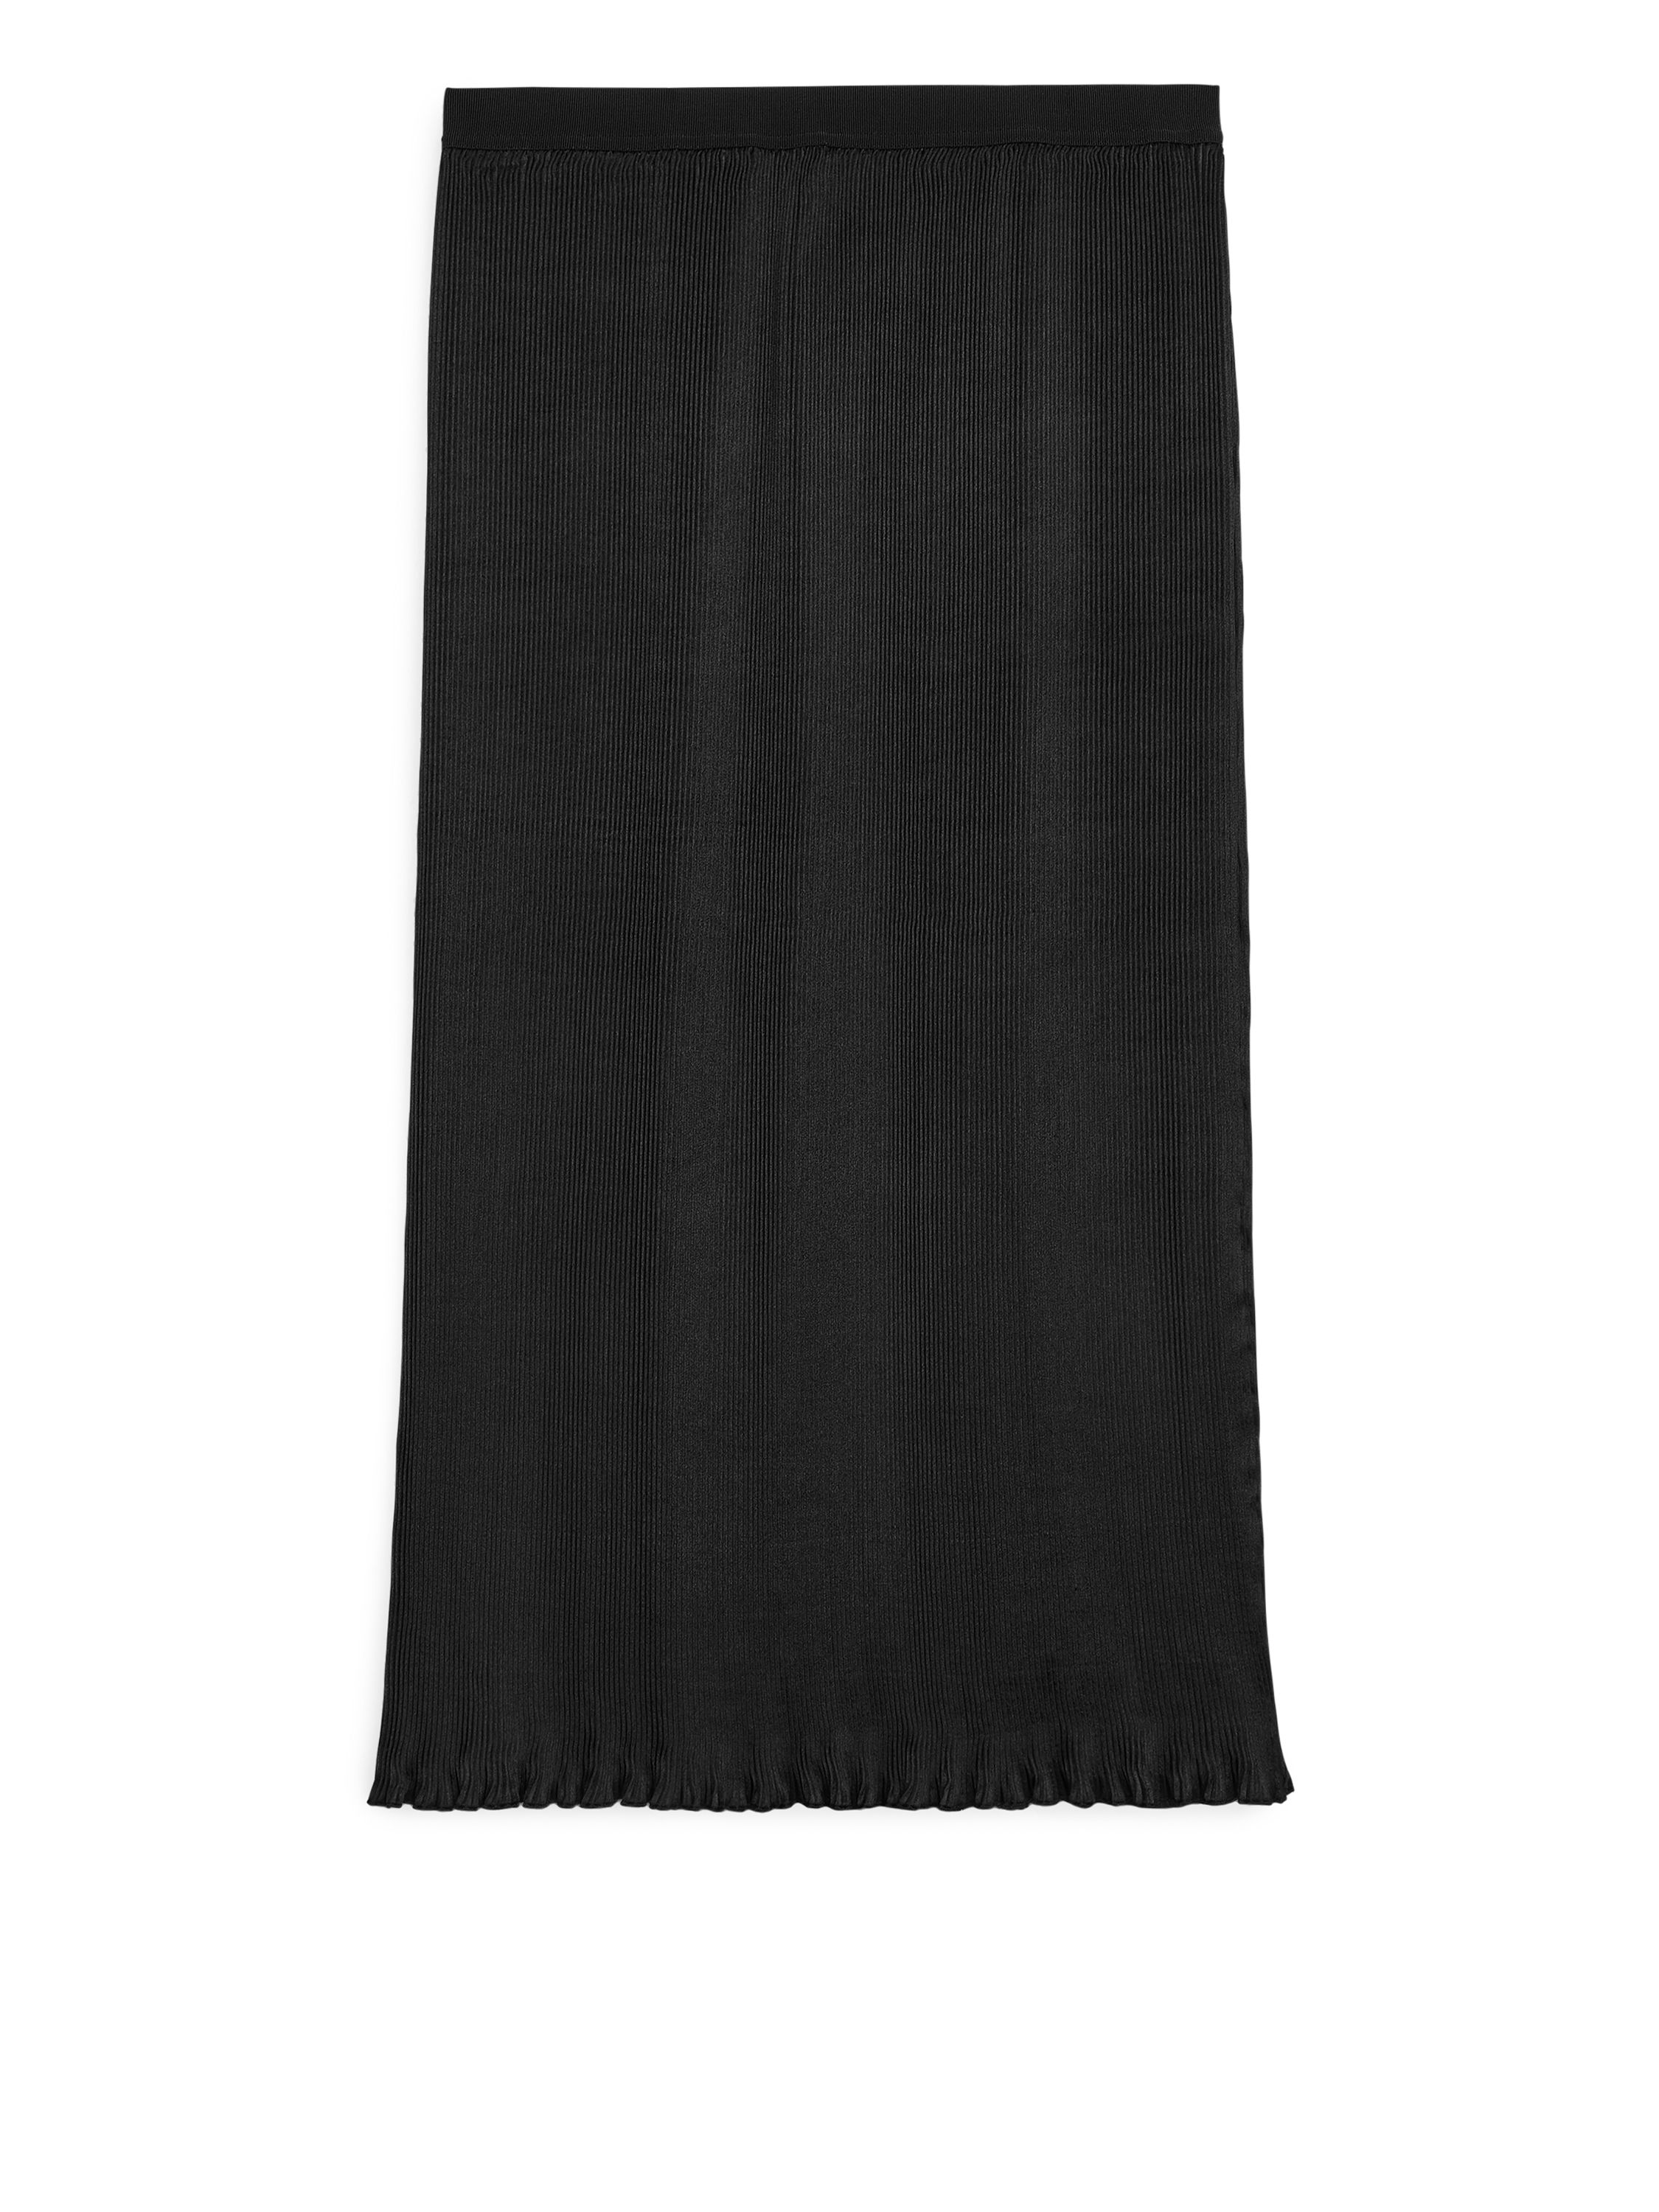 Fabric Swatch image of Arket plissé satin skirt in black